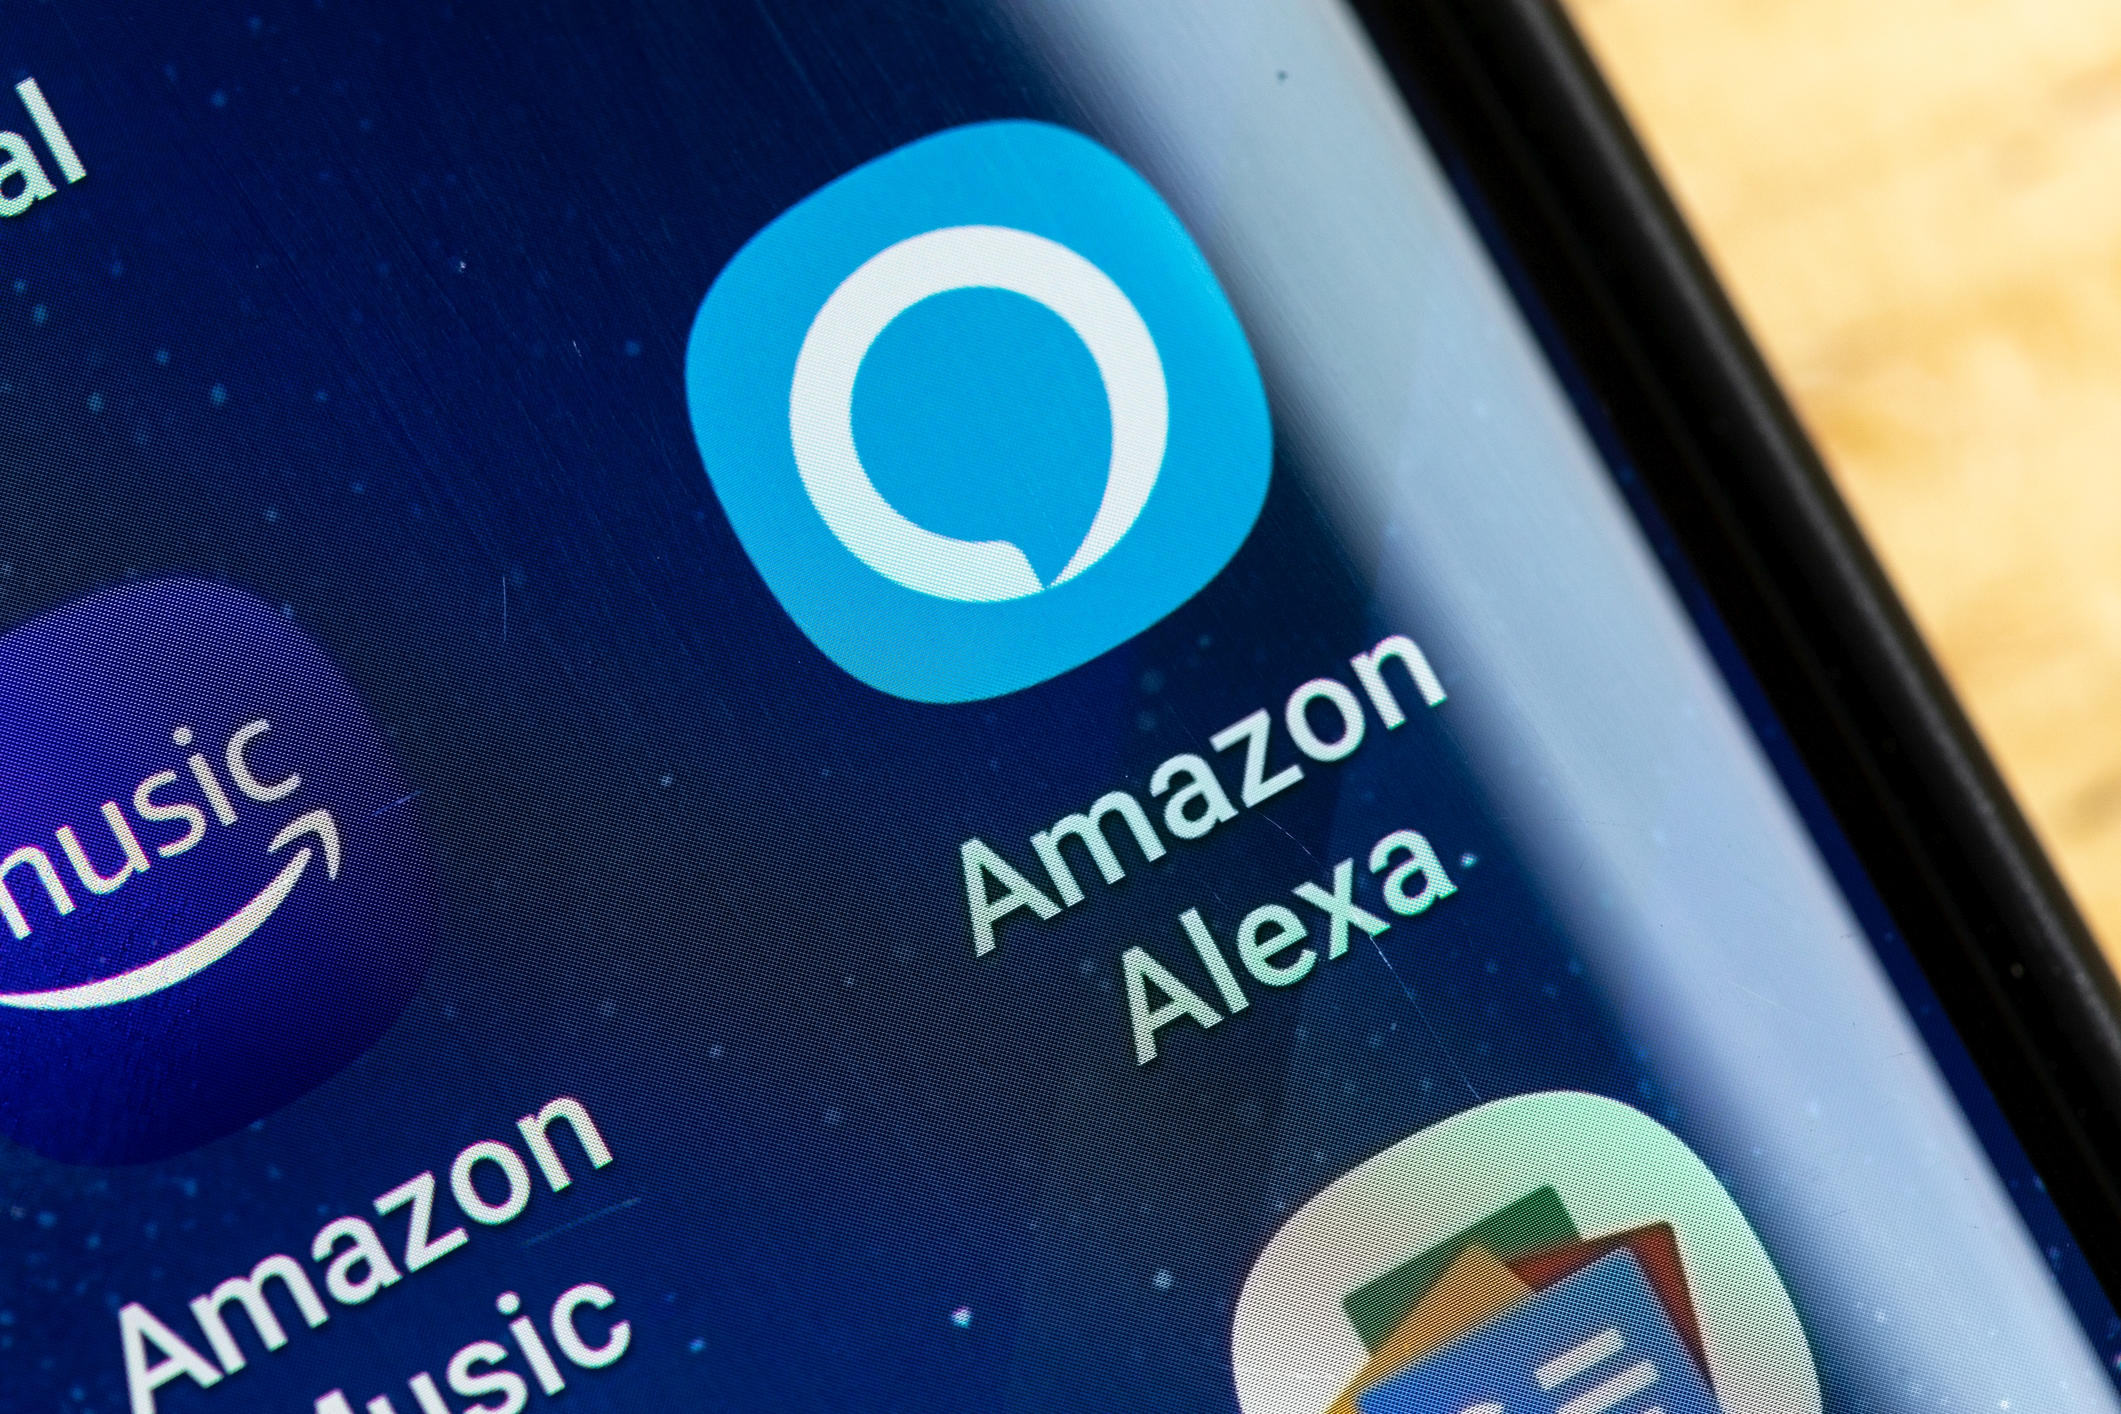 Alexa's also available on cellphones, naturally